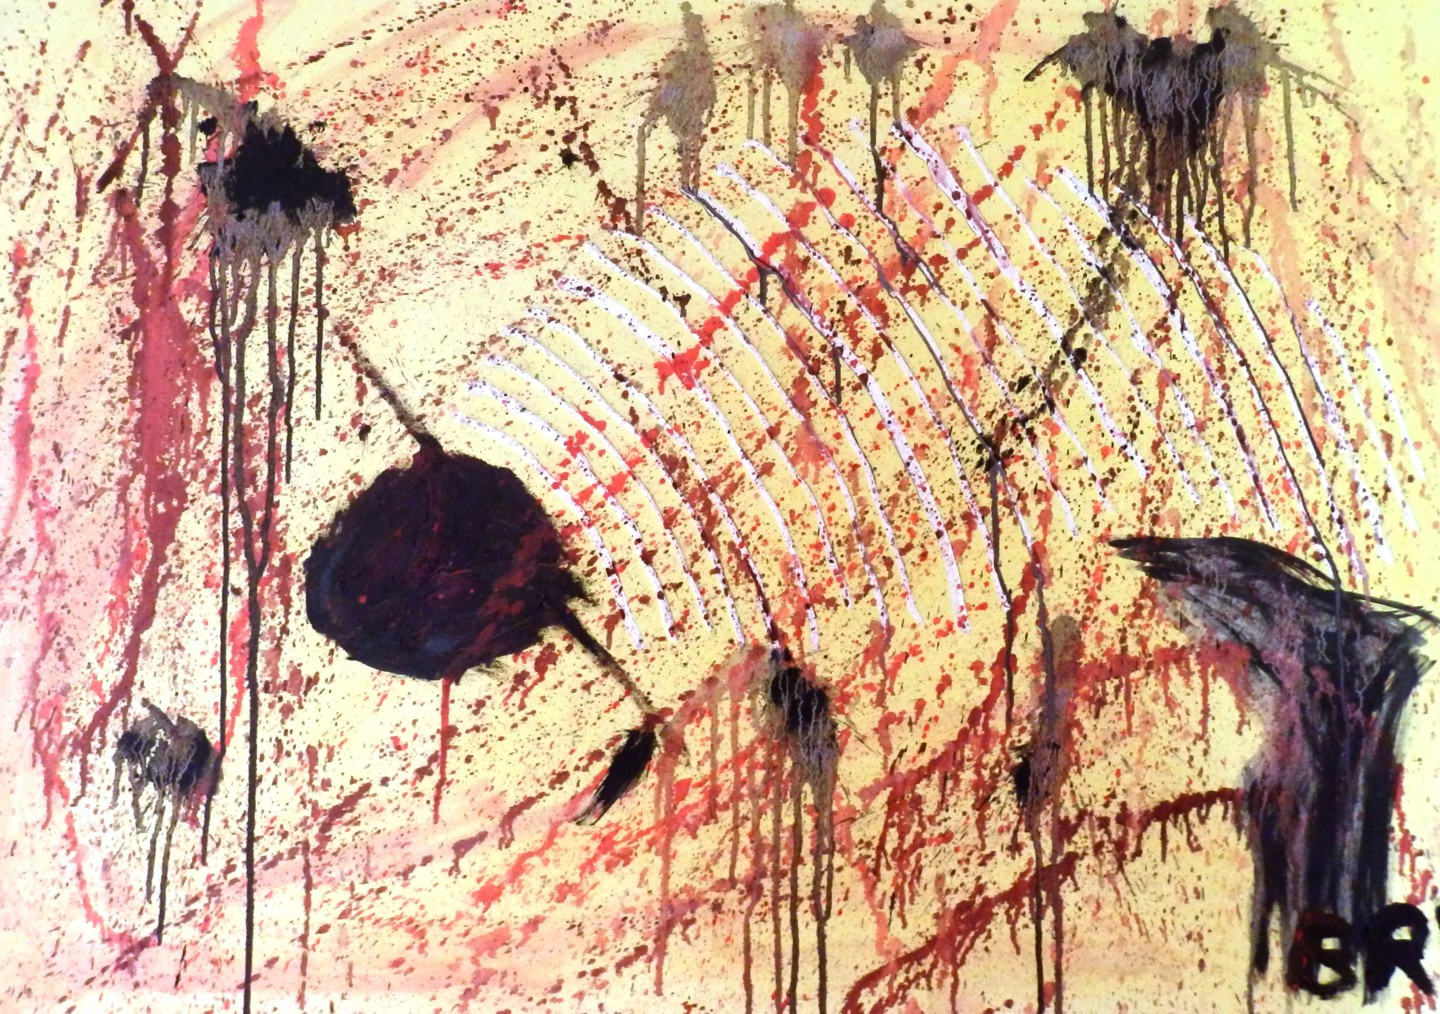 larval-depression.jpg Painting by Jan Brychta | Artmajeur